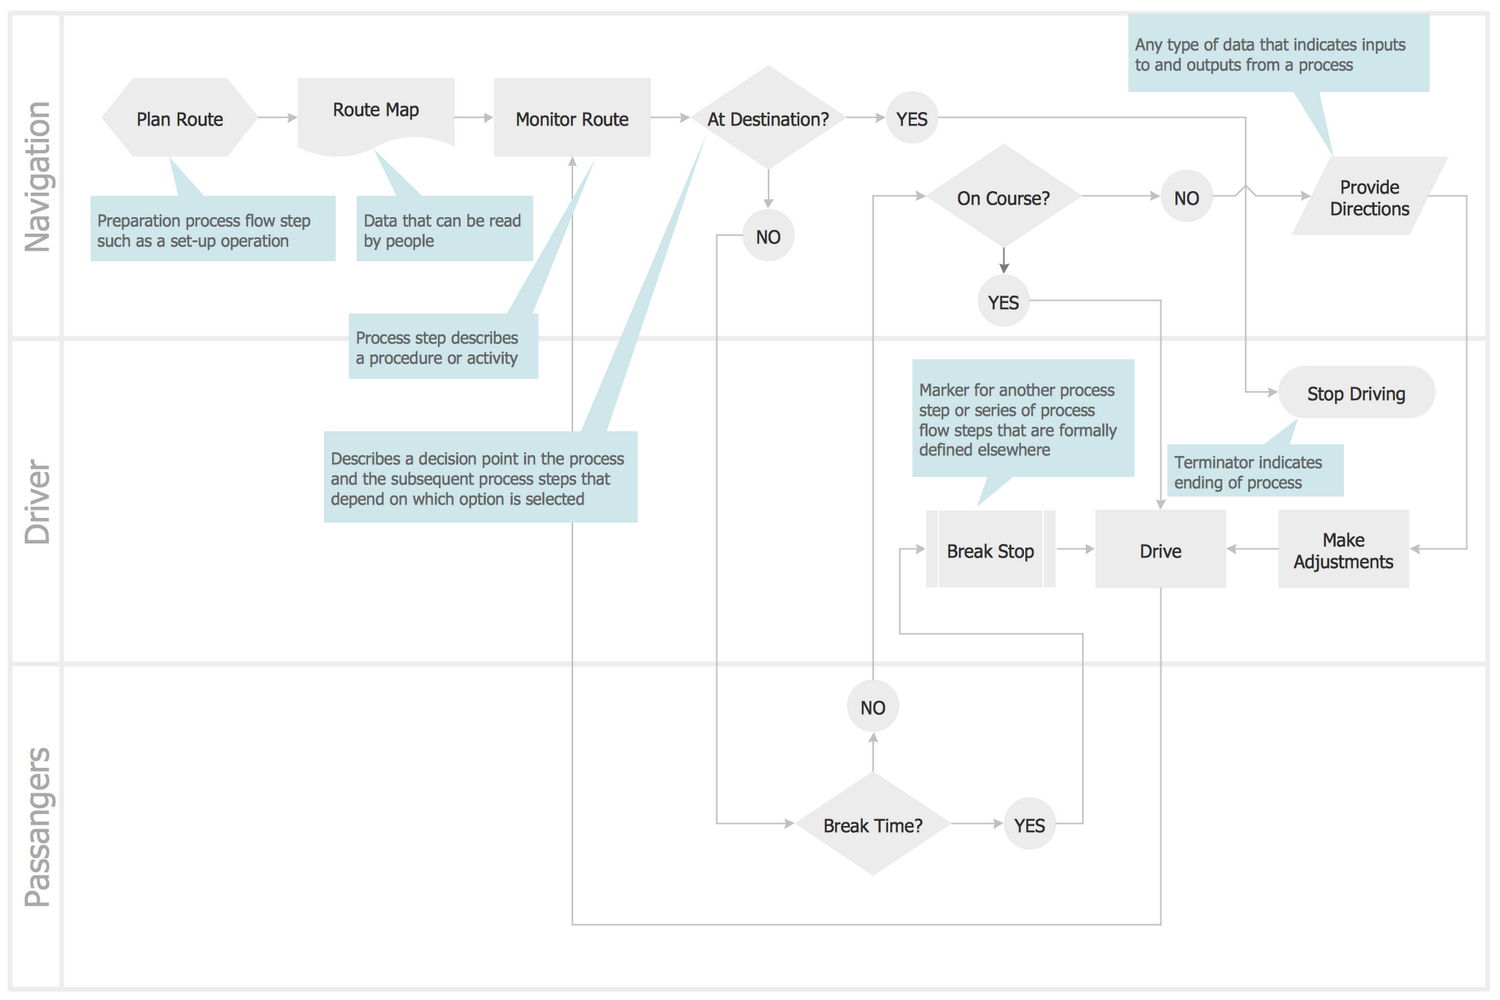 Cross-Functional Flowcharts Solution | ConceptDraw.com